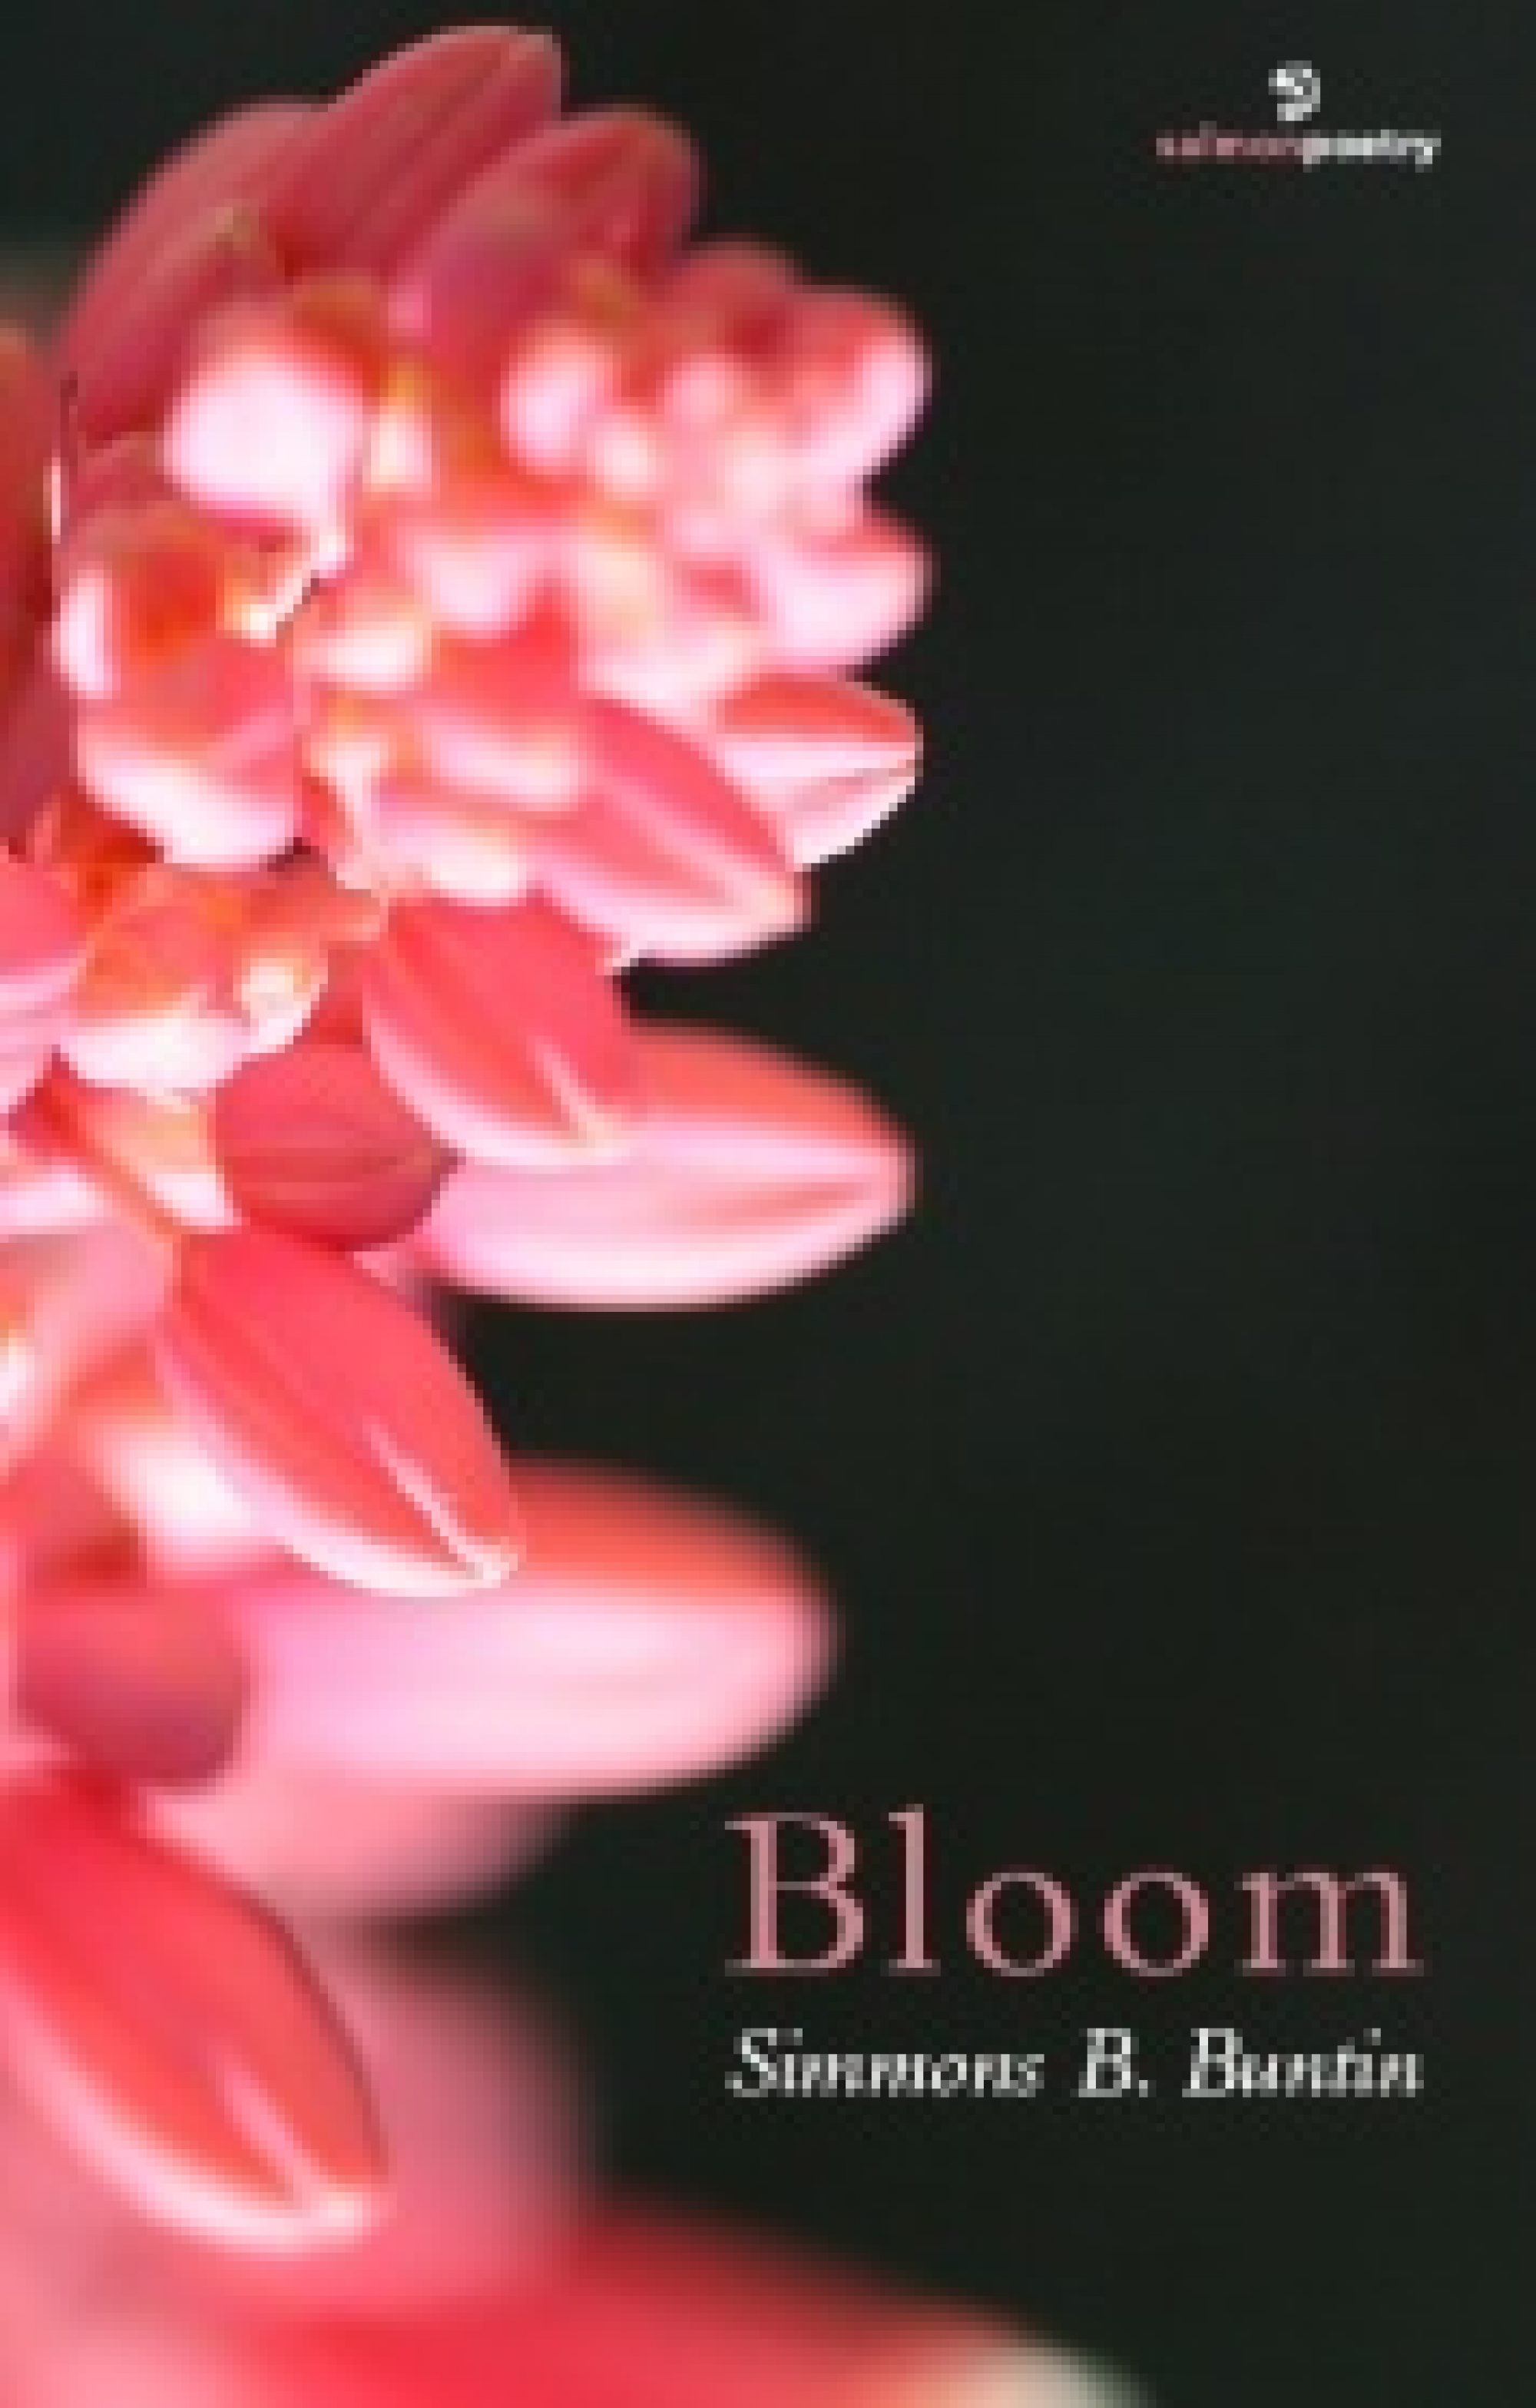 """Buntin's second book, """"Bloom,"""" will be published in October."""